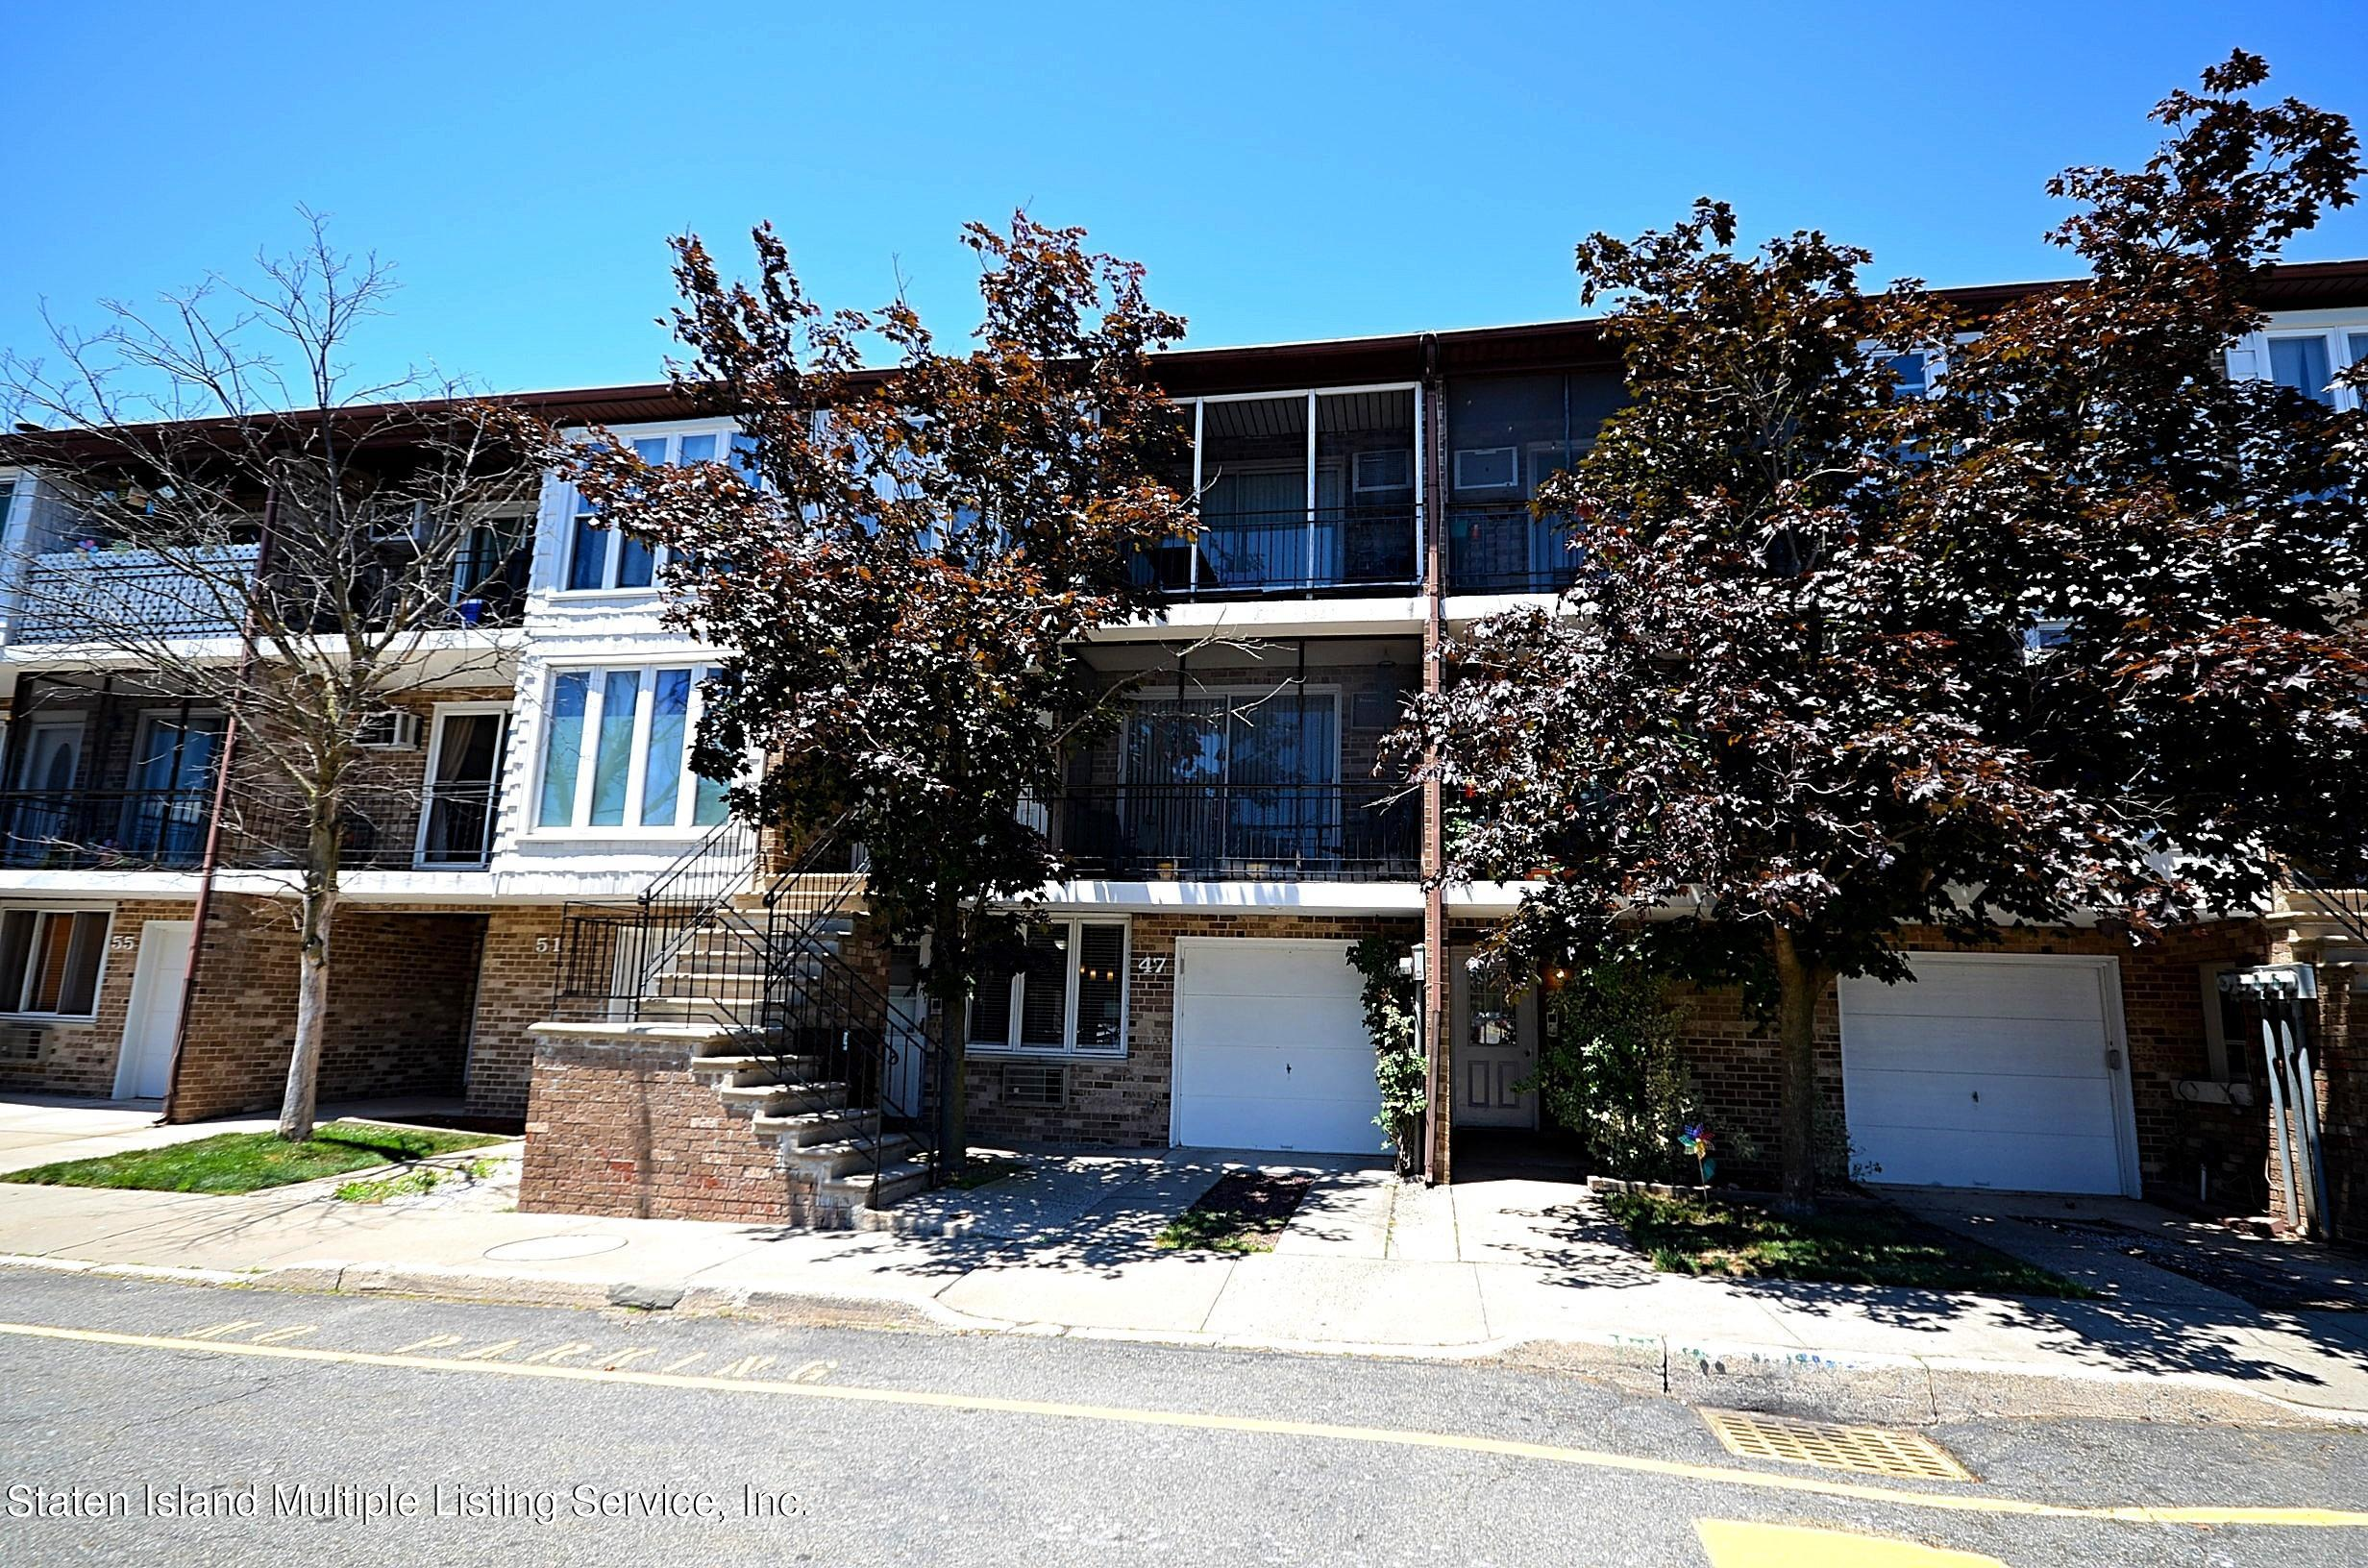 Condo in New Springville - 47 Lamped Loop A1  Staten Island, NY 10314